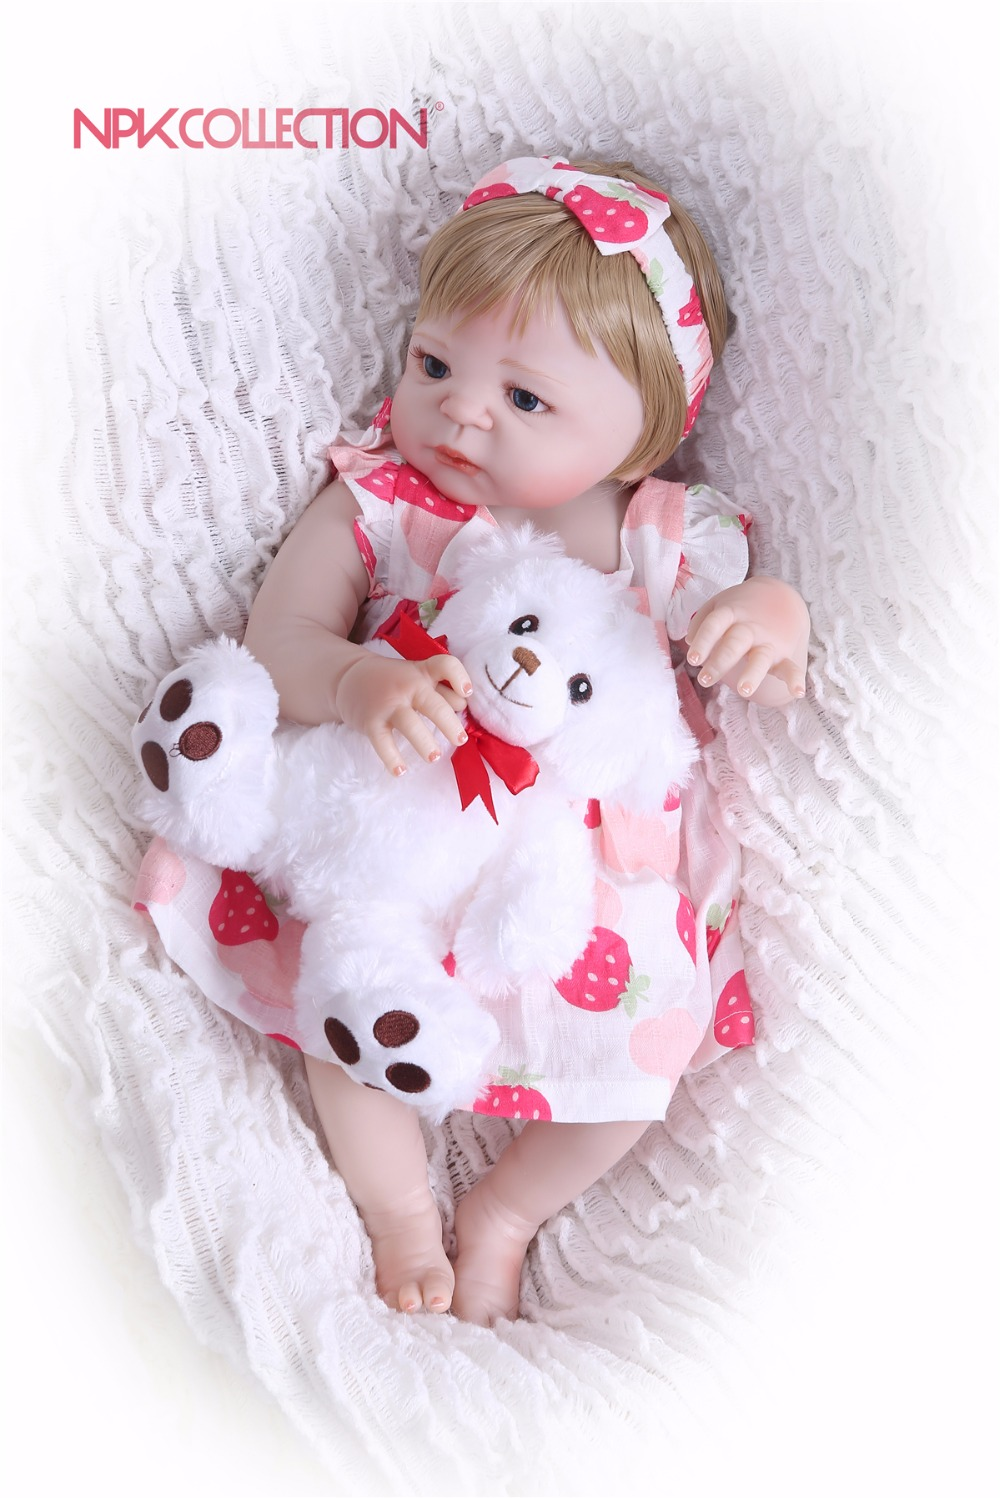 NPKCOLLECTION New Arrival pink Baby Doll Full Silicone Body Lifelike Reborn Princess Girl Doll Handmade Baby Toy Kids Gifts